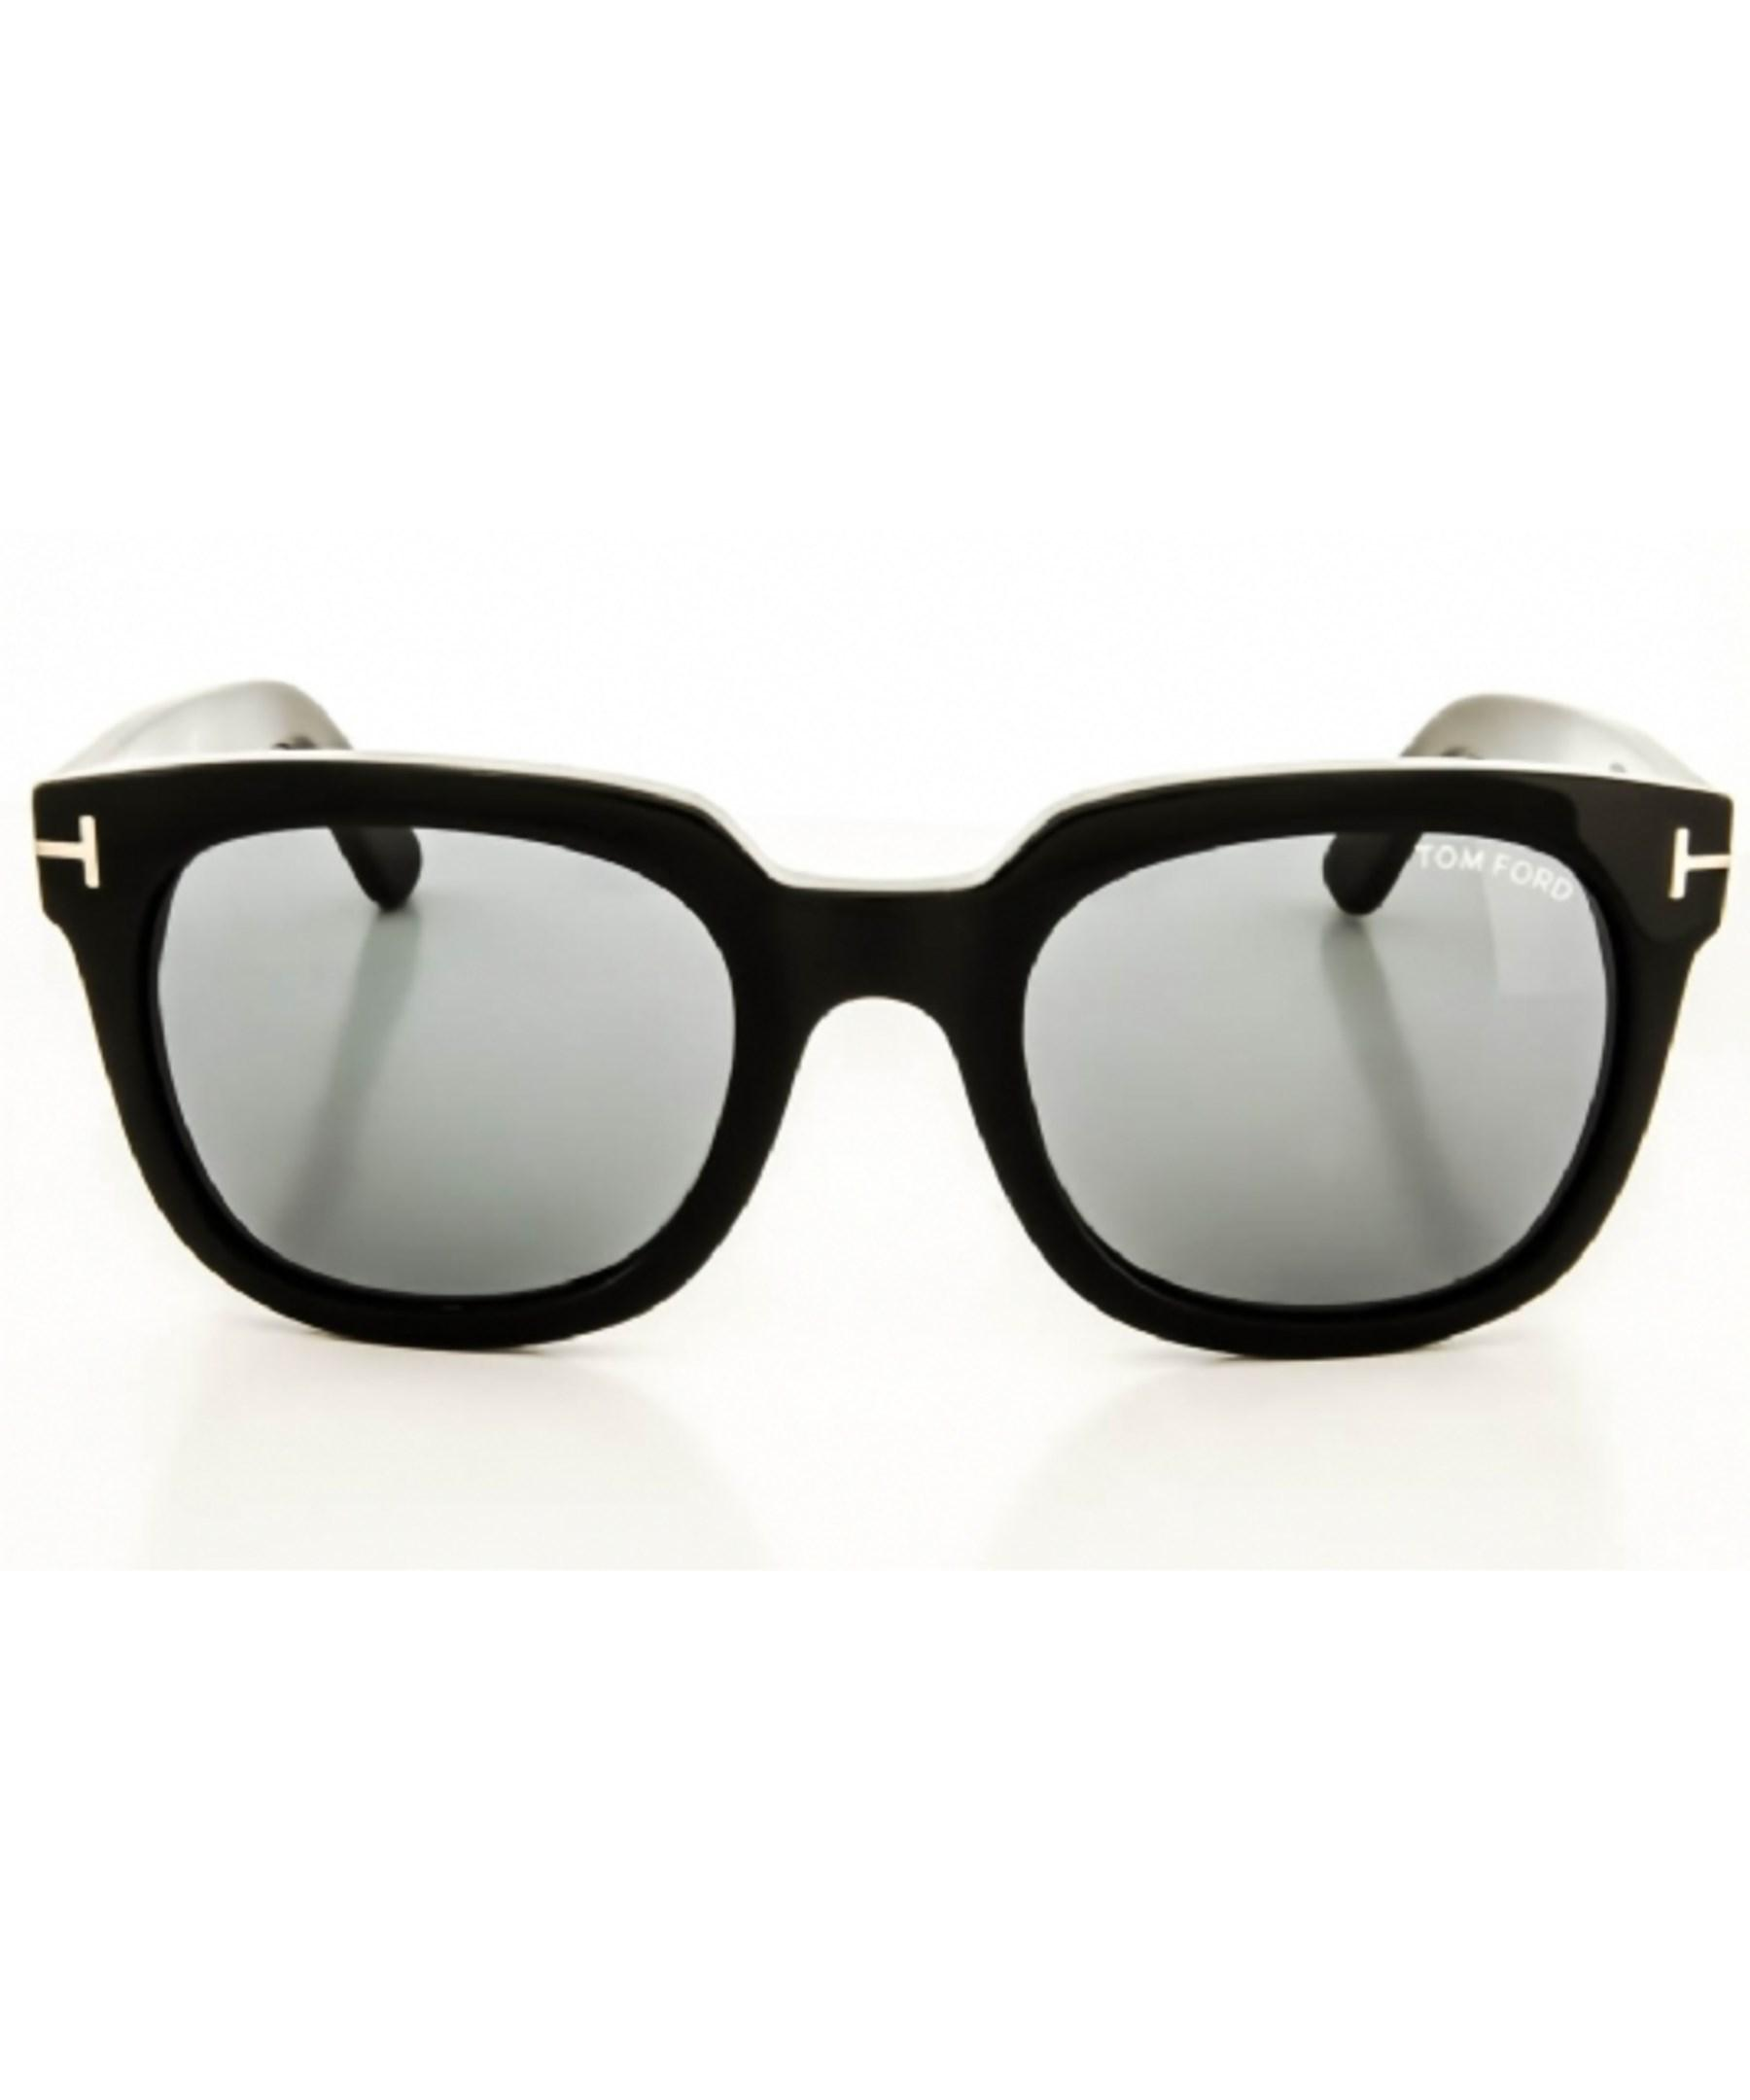 094221587e171 Lyst - Tom ford Ft0198 Campbell 01a in Black for Men